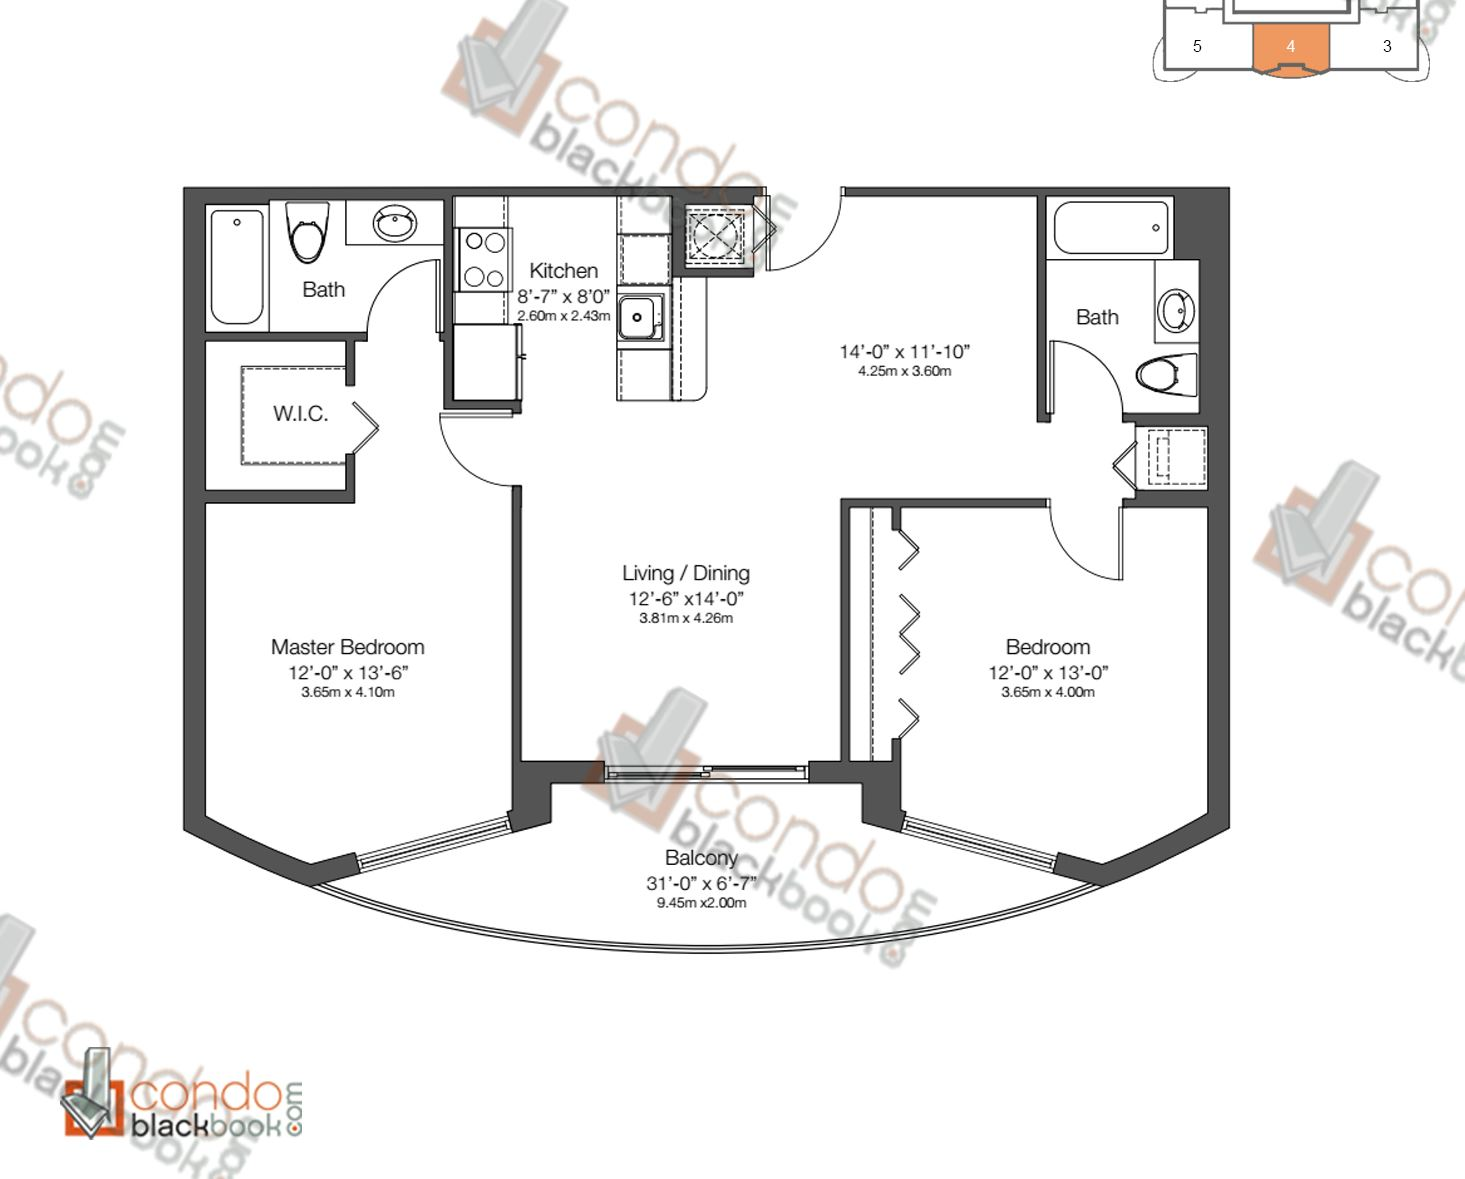 Floor plan for 23 Biscayne Edgewater Miami, model UNIT 4, line 4, 2/2 bedrooms, 1,028 sq ft